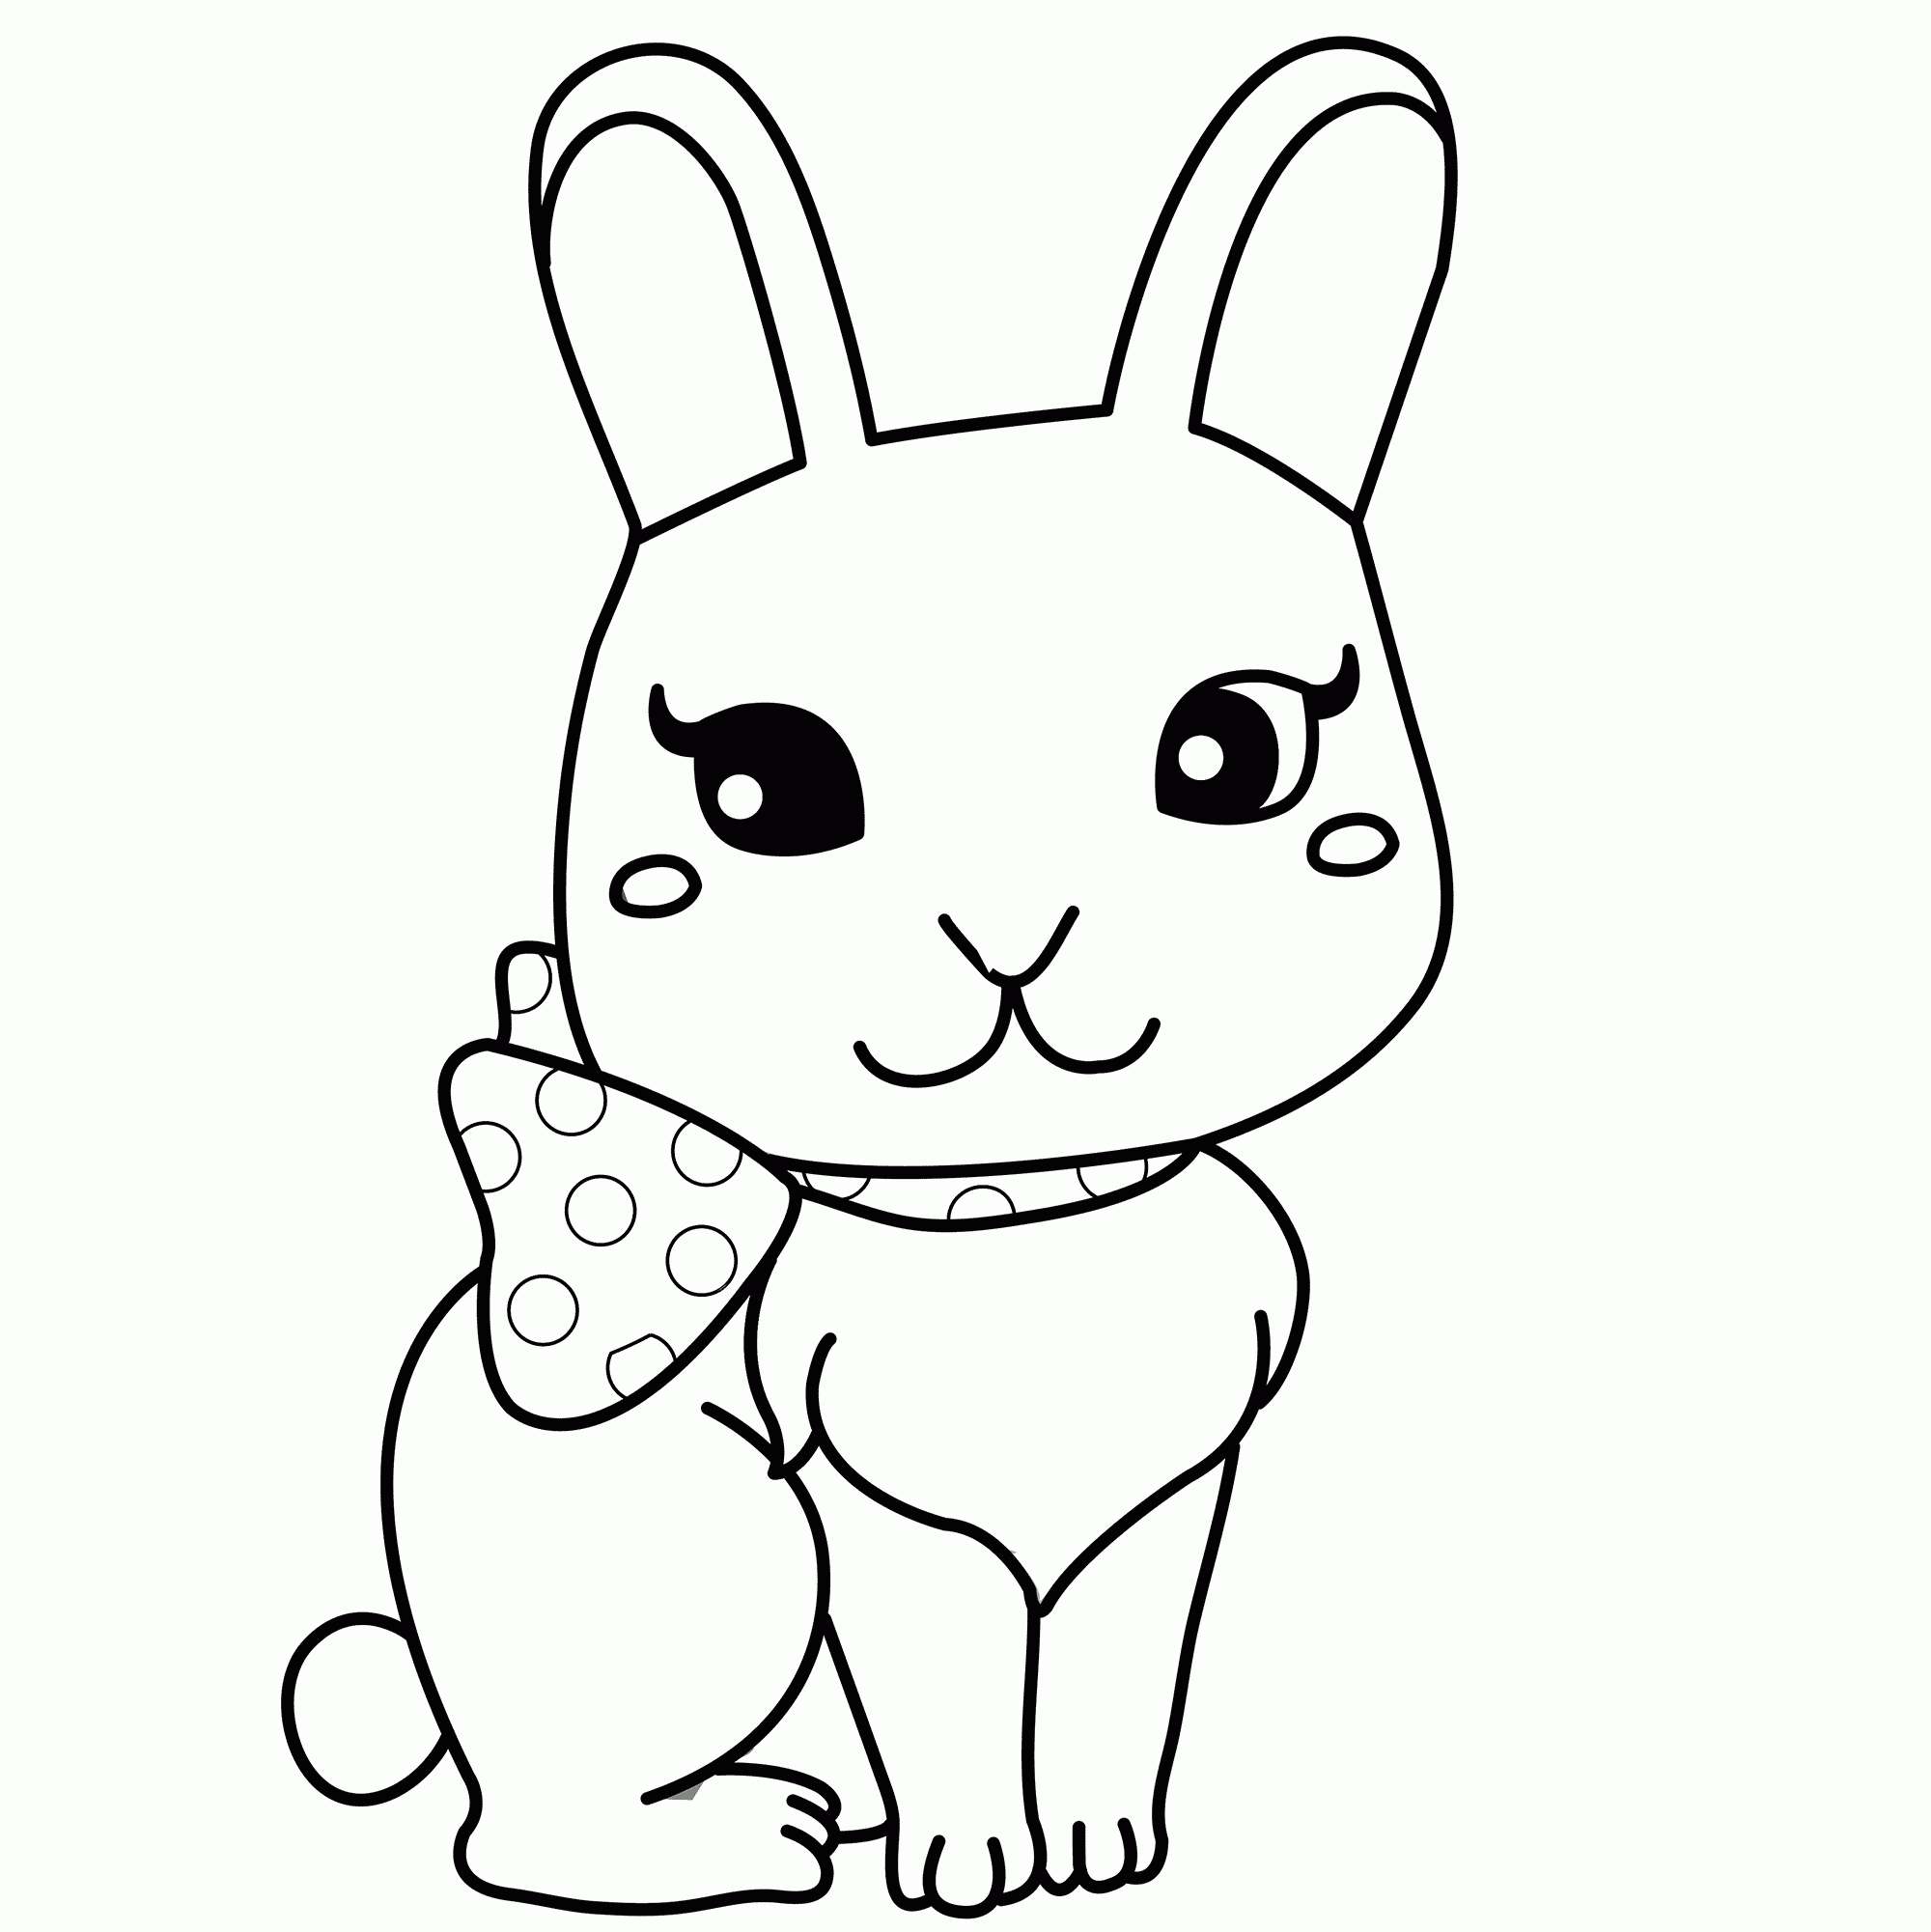 coloring pages of bunny rabbits coloring pages of a rabbit printable free coloring sheets coloring rabbits of bunny pages